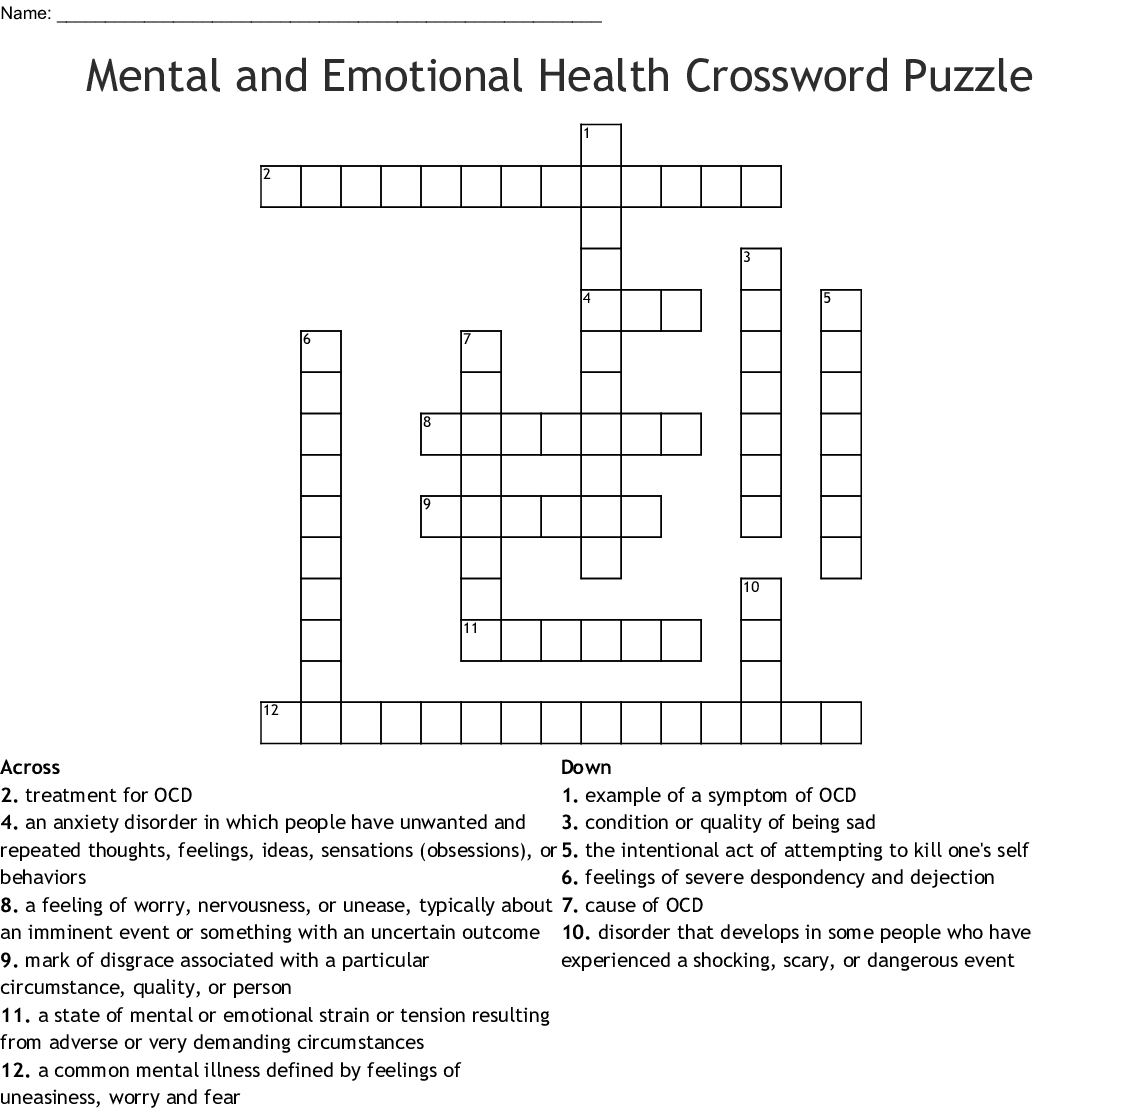 Mental And Emotional Health Crossword Puzzle Crossword - Wordmint - Printable Mental Health Crossword Puzzle